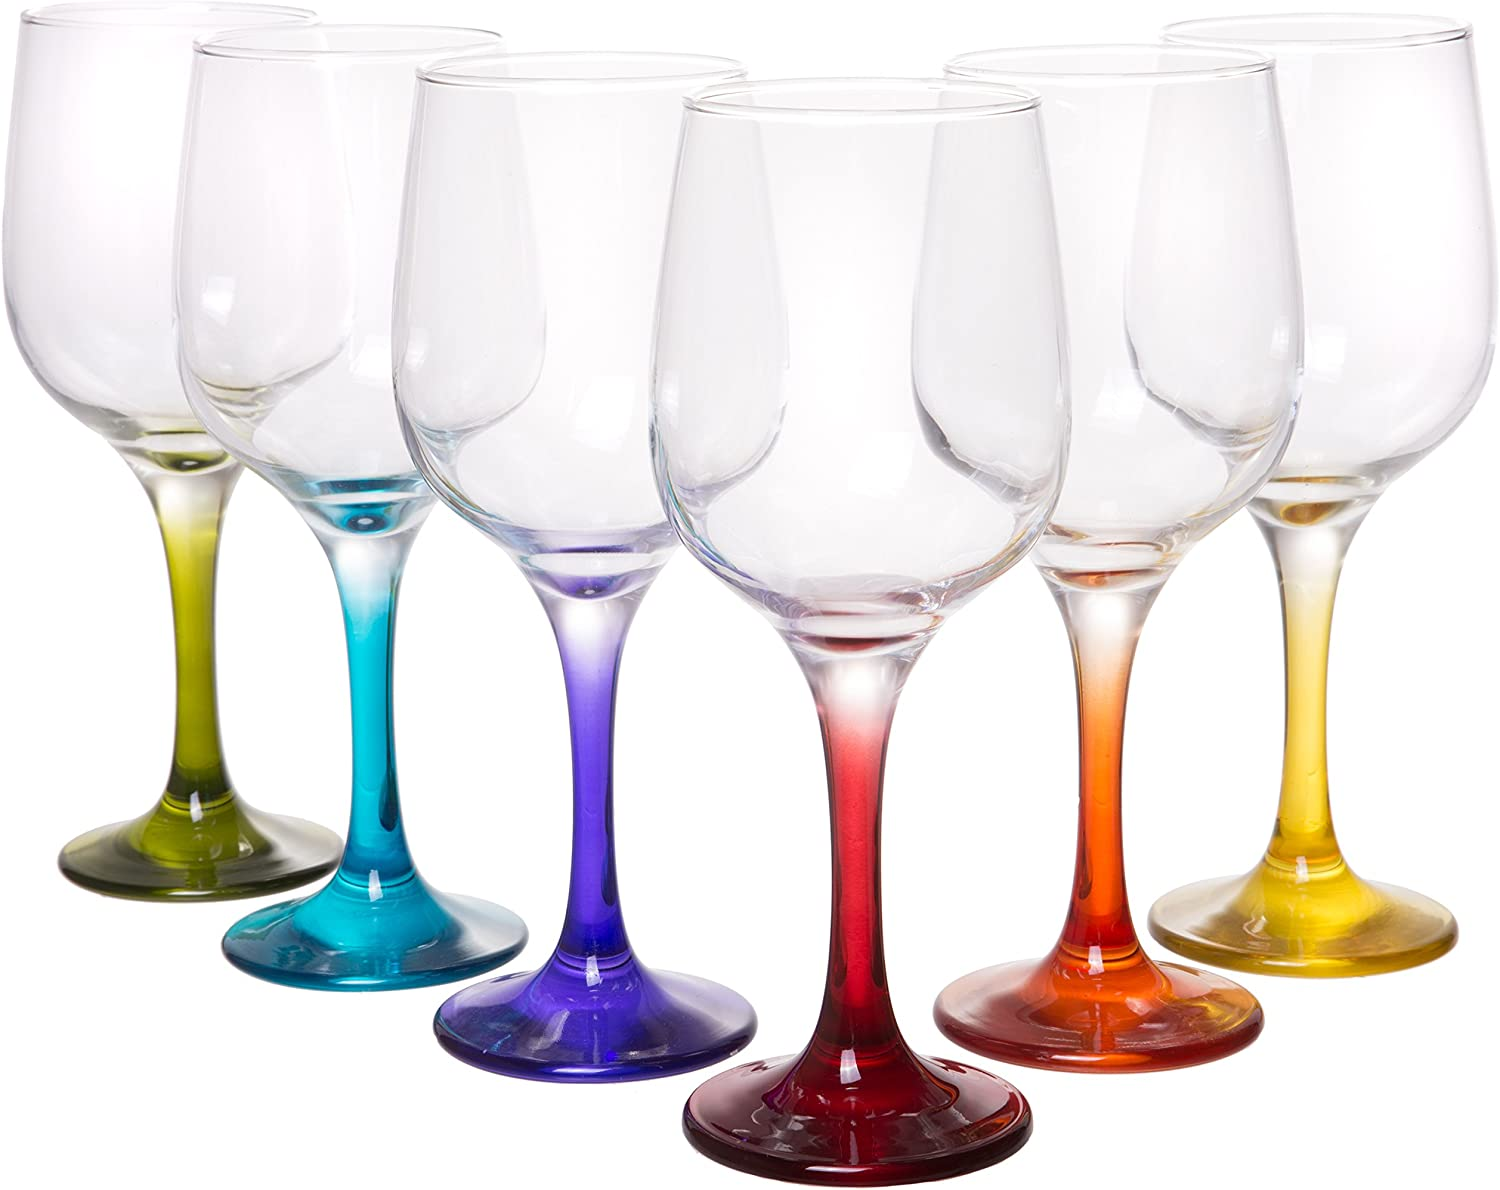 Amazon Com Coral Fame Large Rainbow Wine Glasses Crystal Clear Barware With Colored Stems Set Of 6 15 Fl Oz Wine Glasses